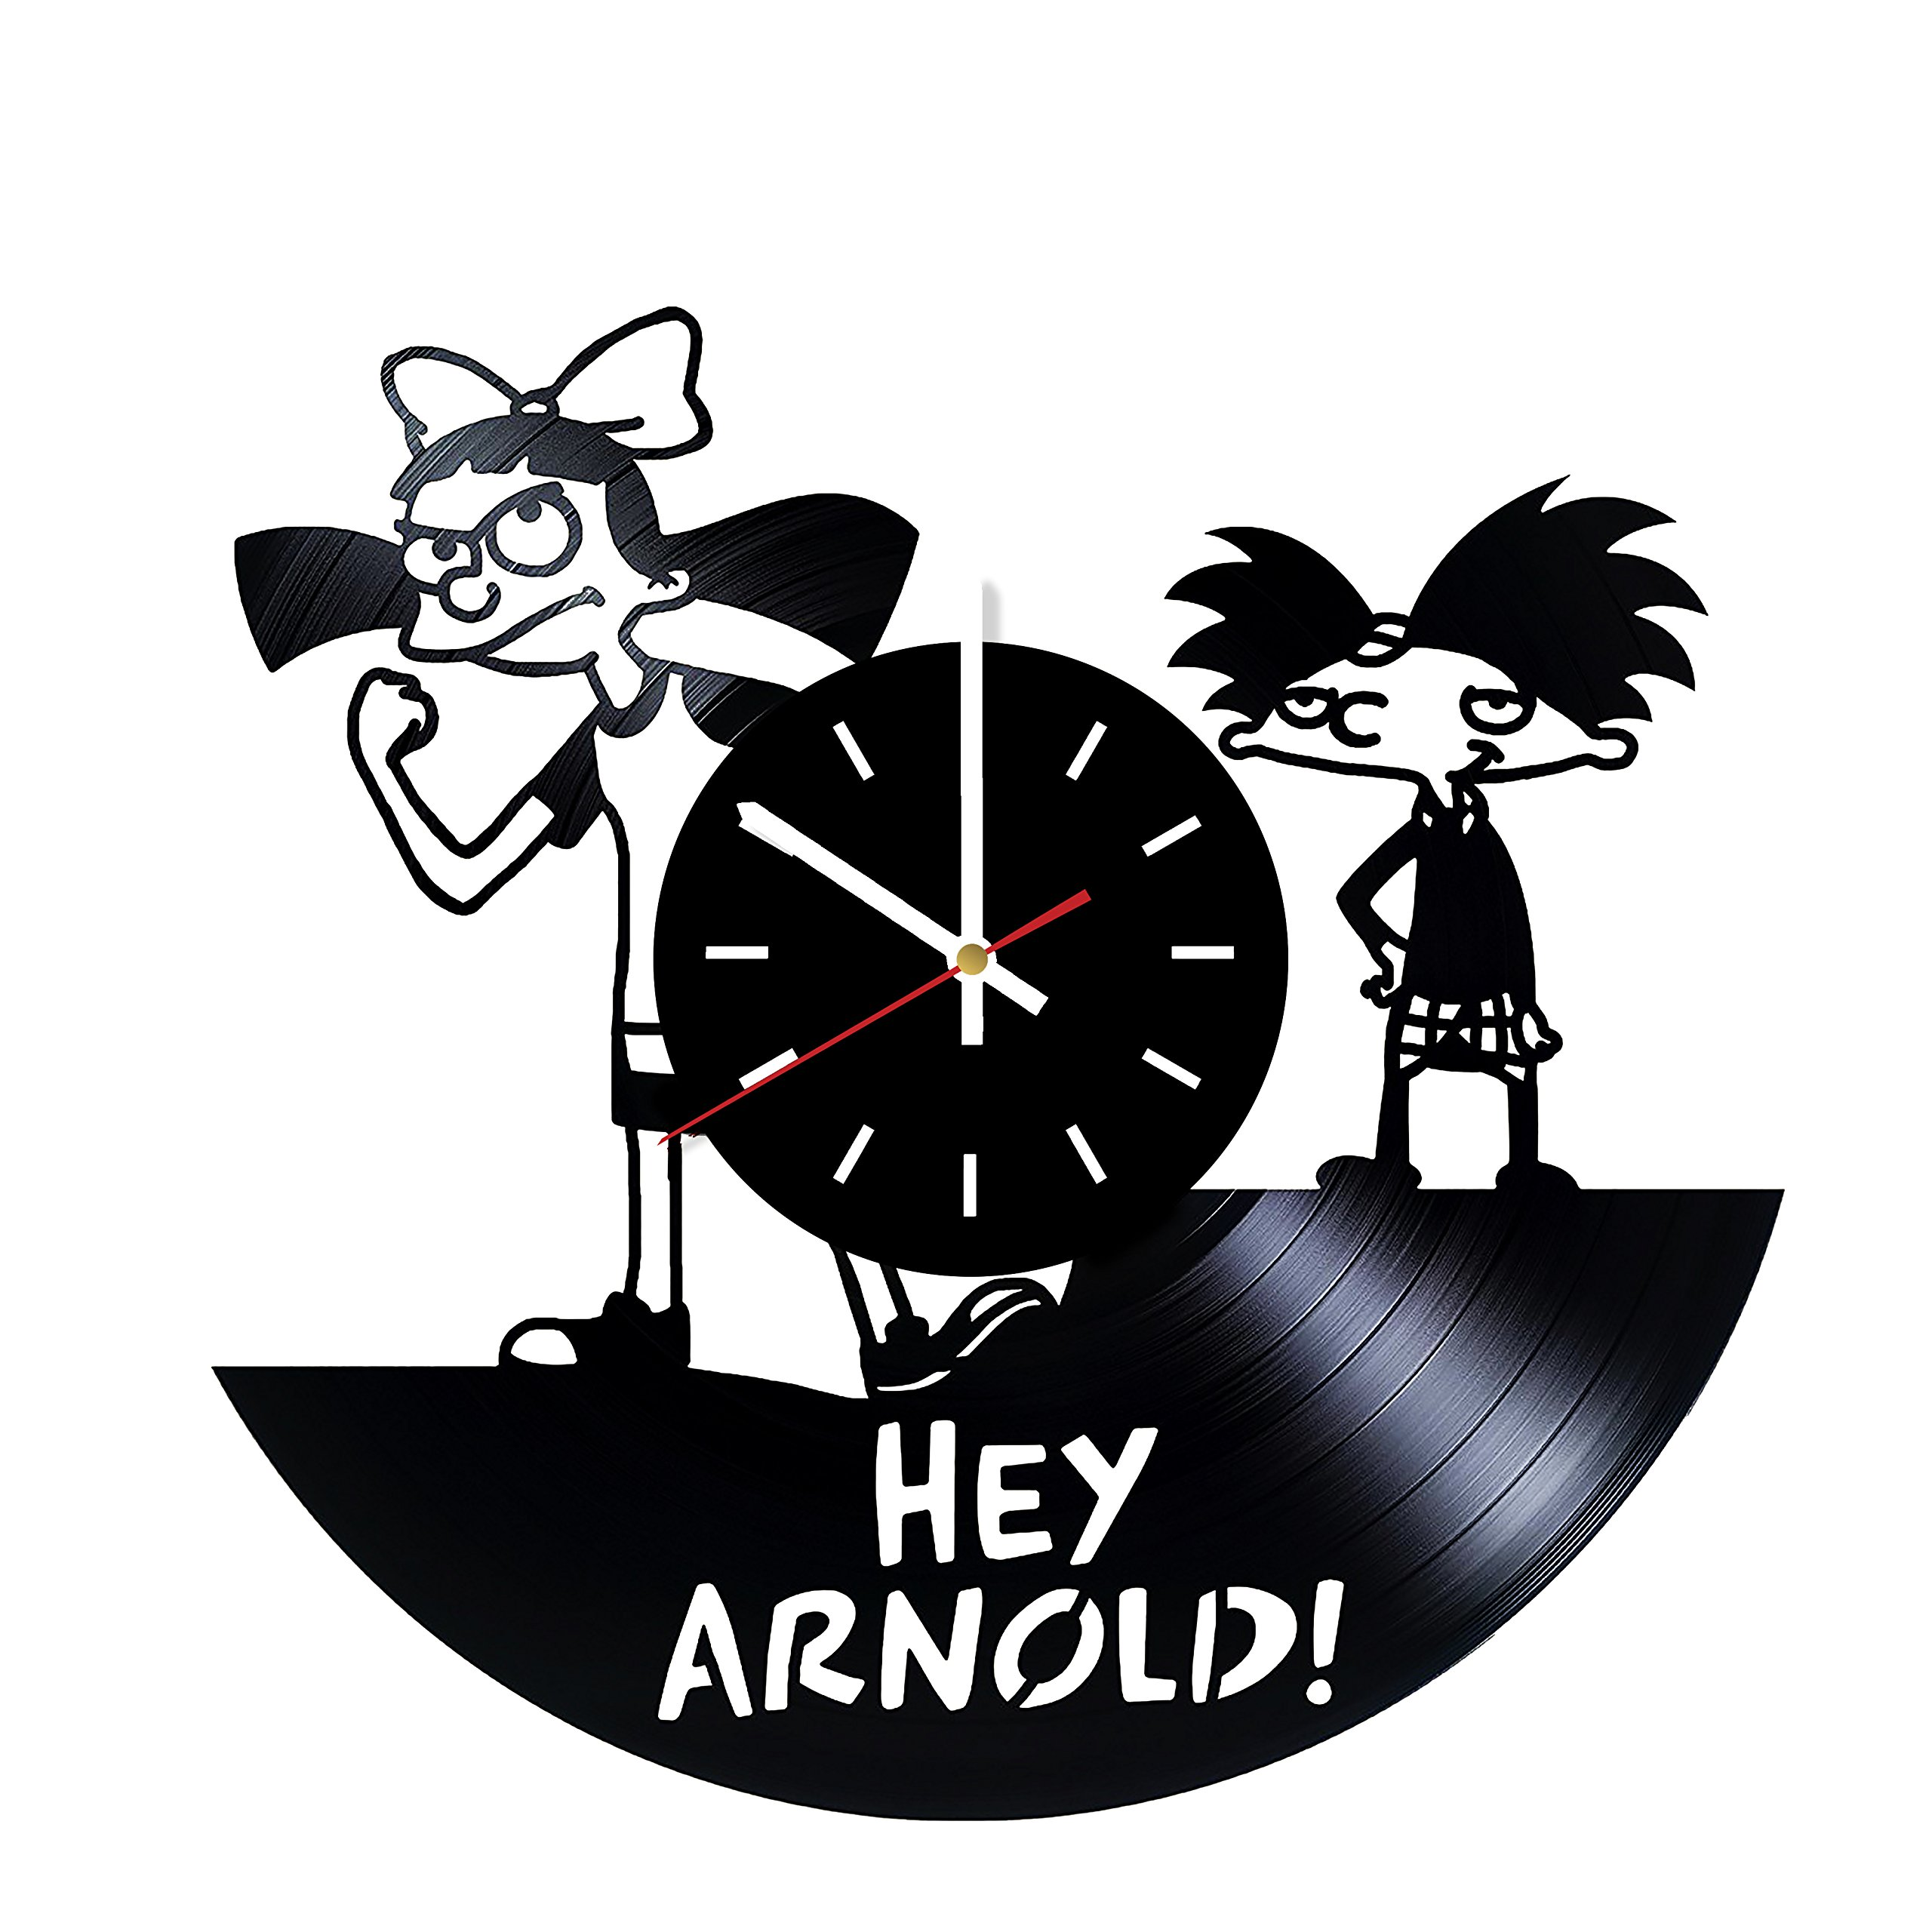 Everyday Arts Hey Arnold Nickelodeon Design Vinyl Record Wall Clock - Get Unique Bedroom or Garage Wall Decor - Gift Ideas for Friends, Brother - Darth Vader Unique Modern Art